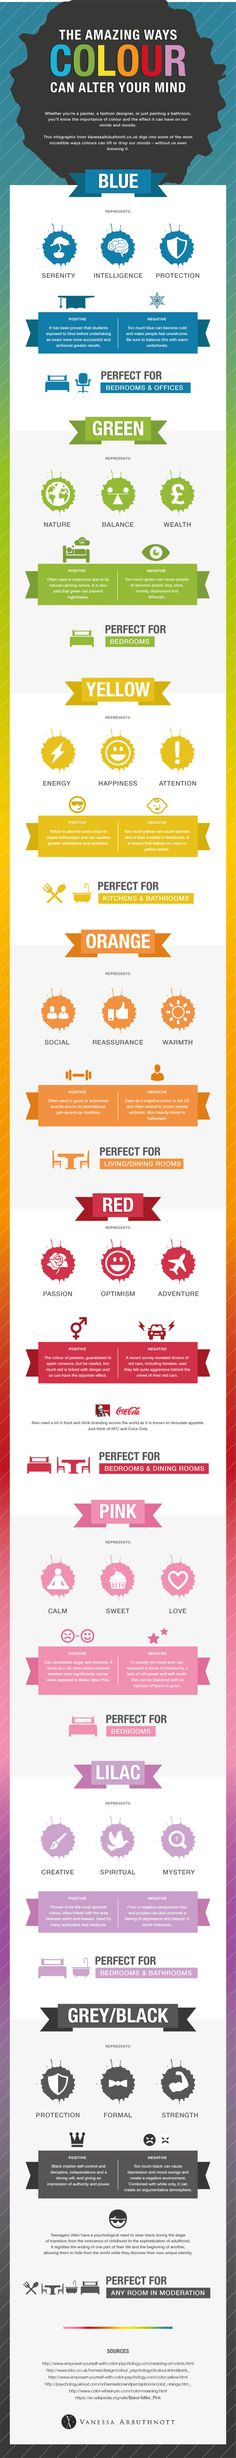 The Amazing Ways Colours Can Alter Your Mind #infographic #webdesign